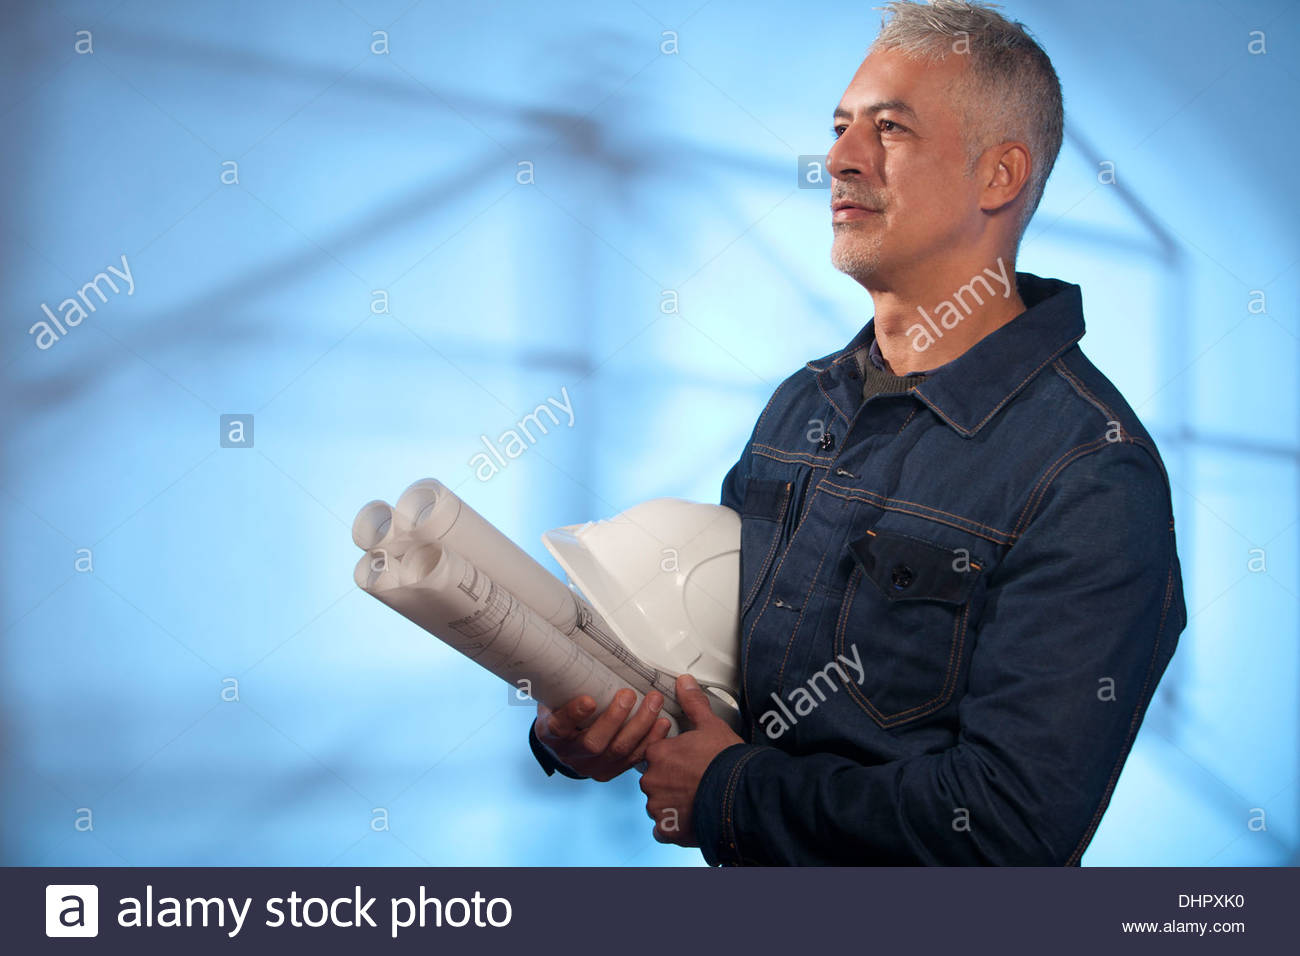 construction site architect scaffolding engineer - Stock Image